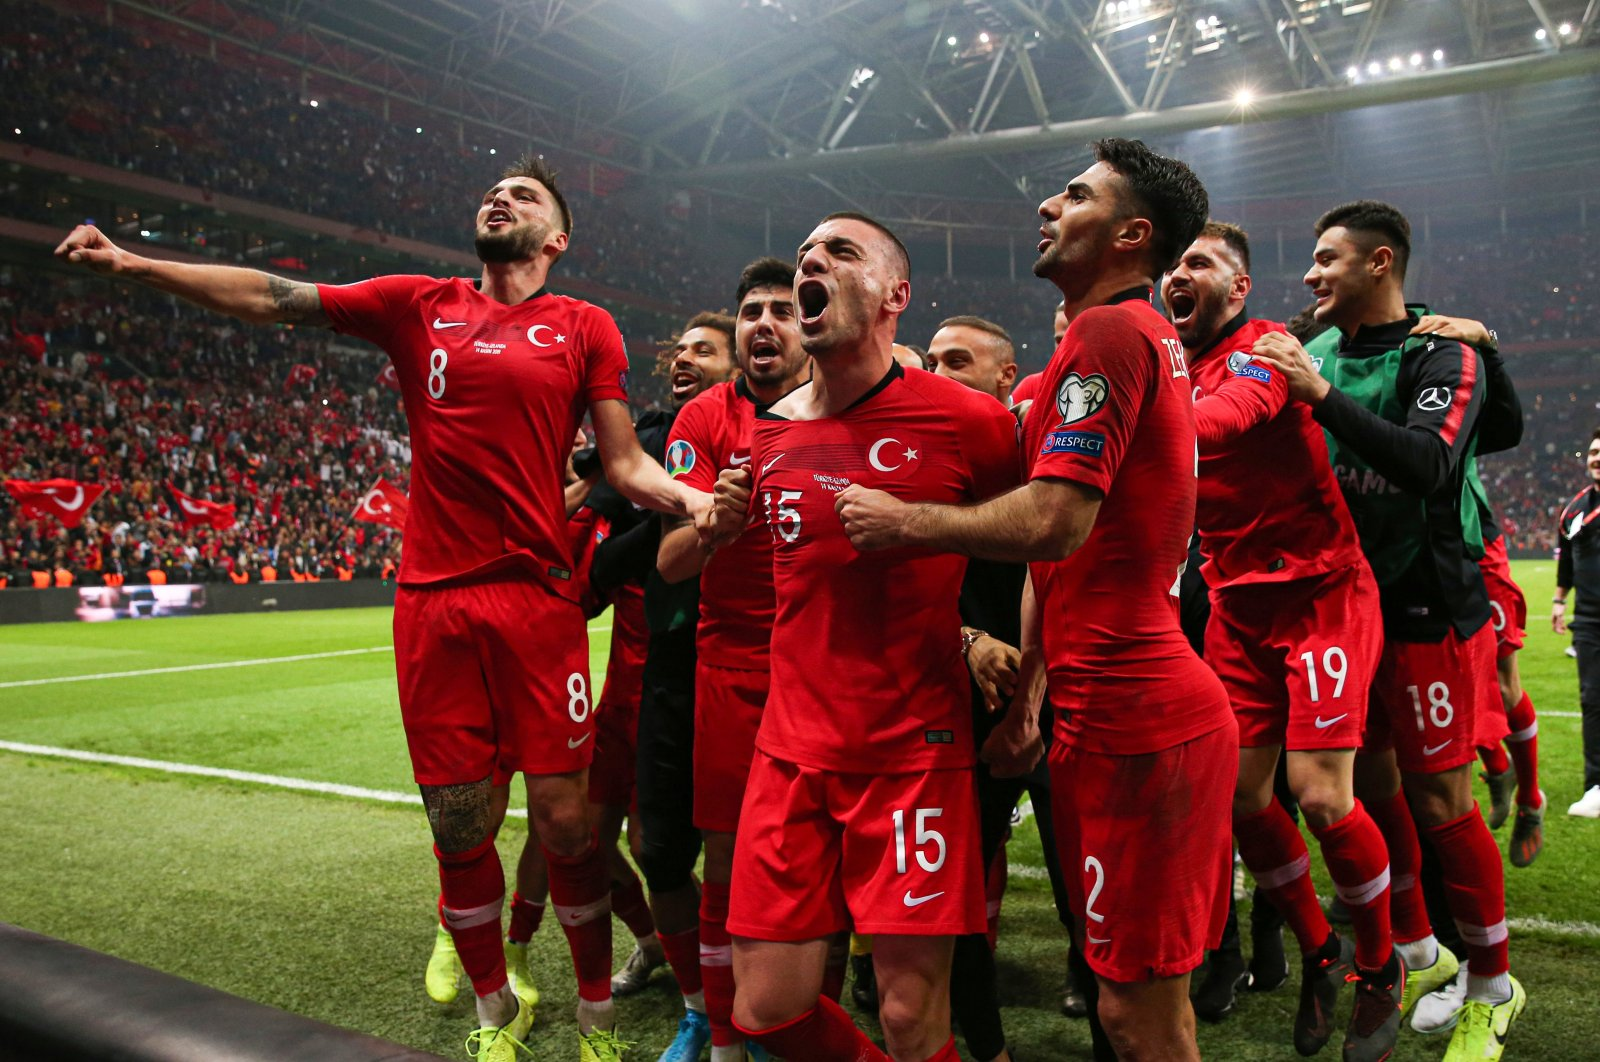 The Turkish national football team celebrates qualifying for the Euro 2020 after holding Iceland to a 0-0 draw at the Türk Telekom Stadium, Istanbul, Turkey, Nov. 14, 2021. (AA Photo)